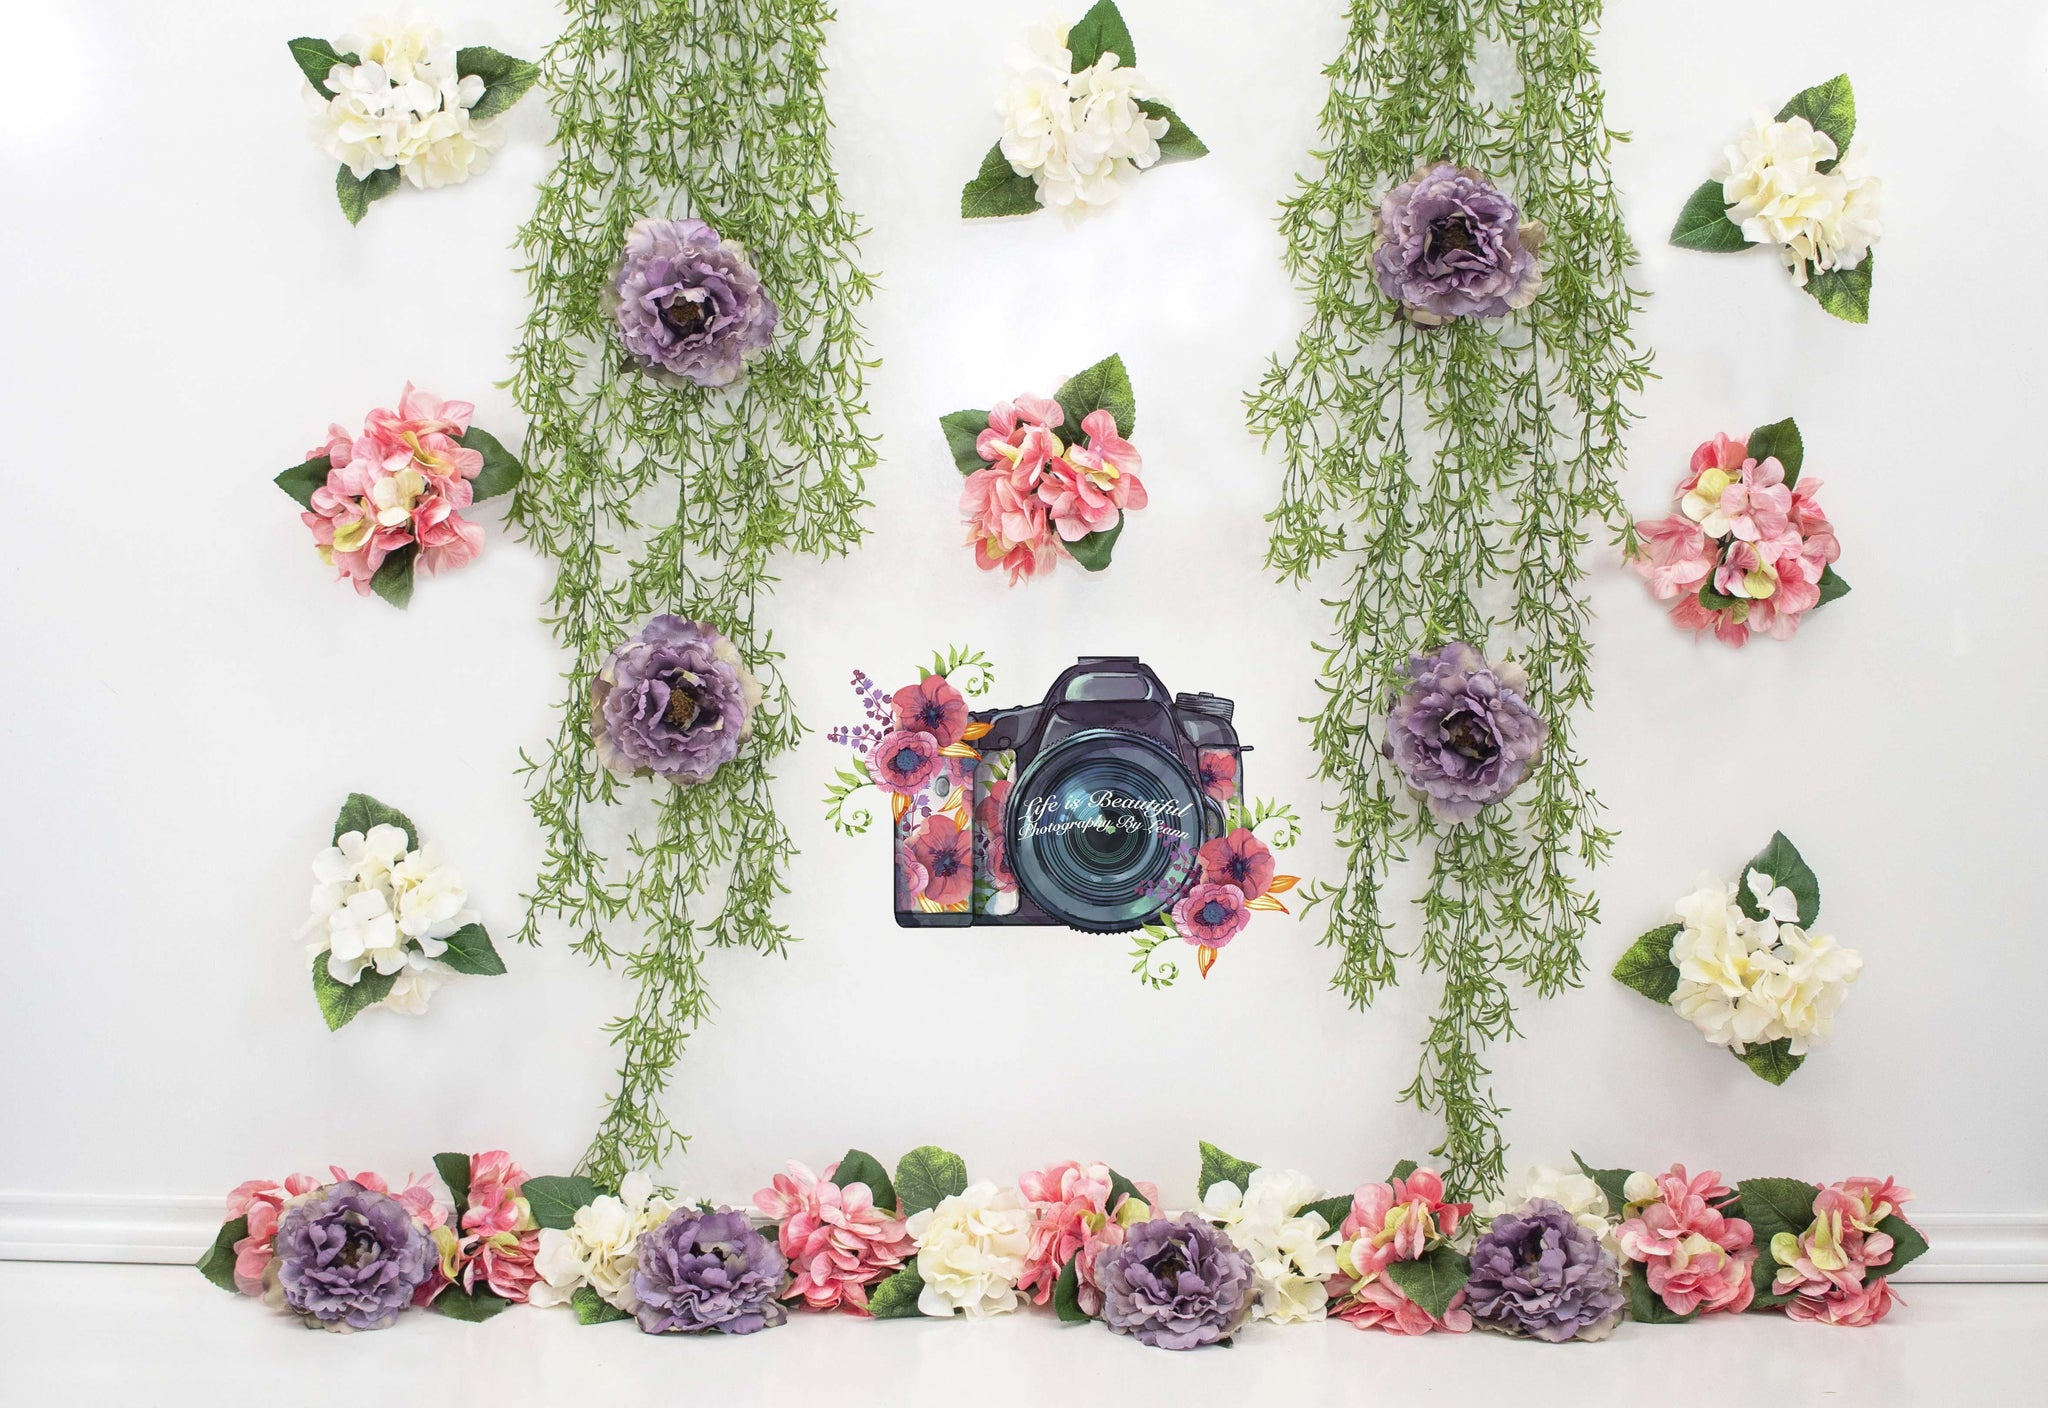 Load image into Gallery viewer, Katebackdrop£ºKate  Flower Grass Decoration Backdrop for Photography Designed By Leann West